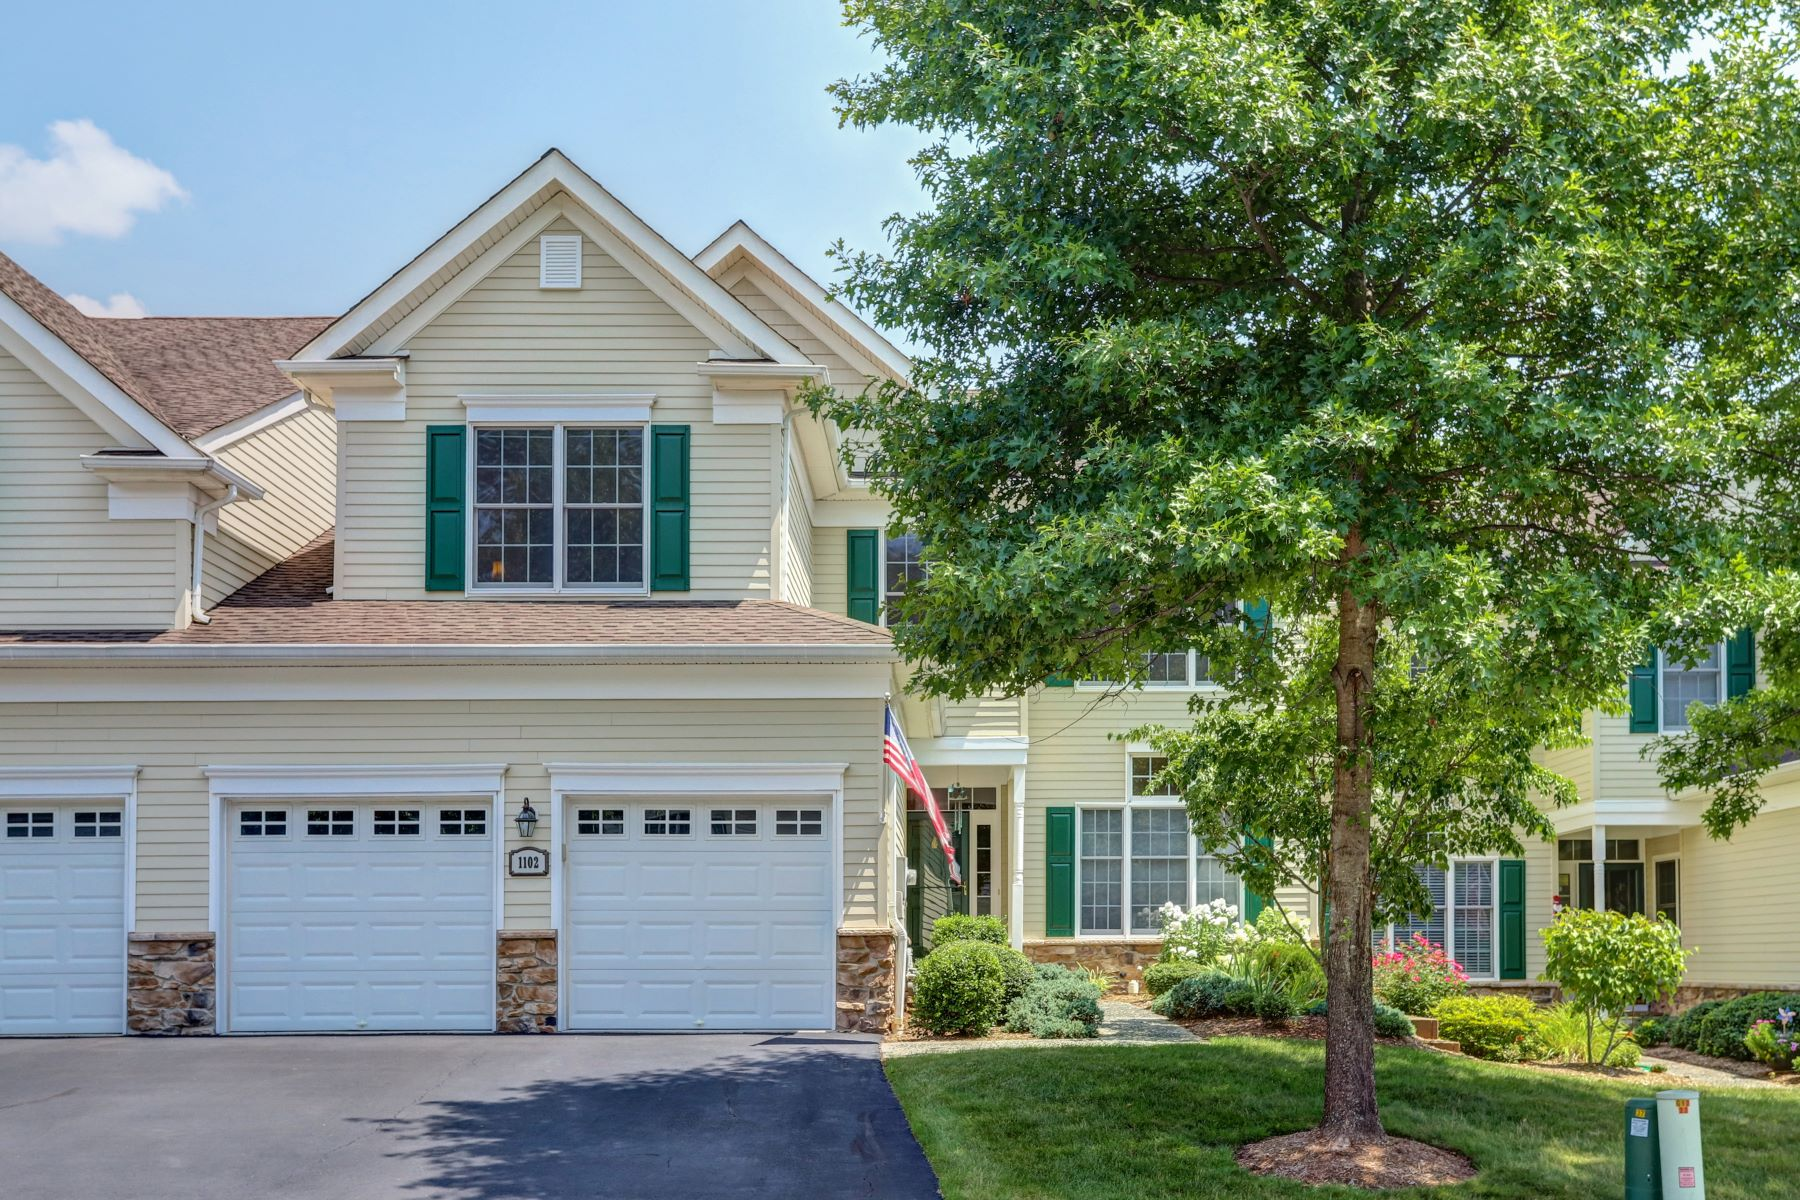 townhouses for Sale at Immaculate Townhome 1102 Farley Road Tewksbury Township, New Jersey 08889 United States